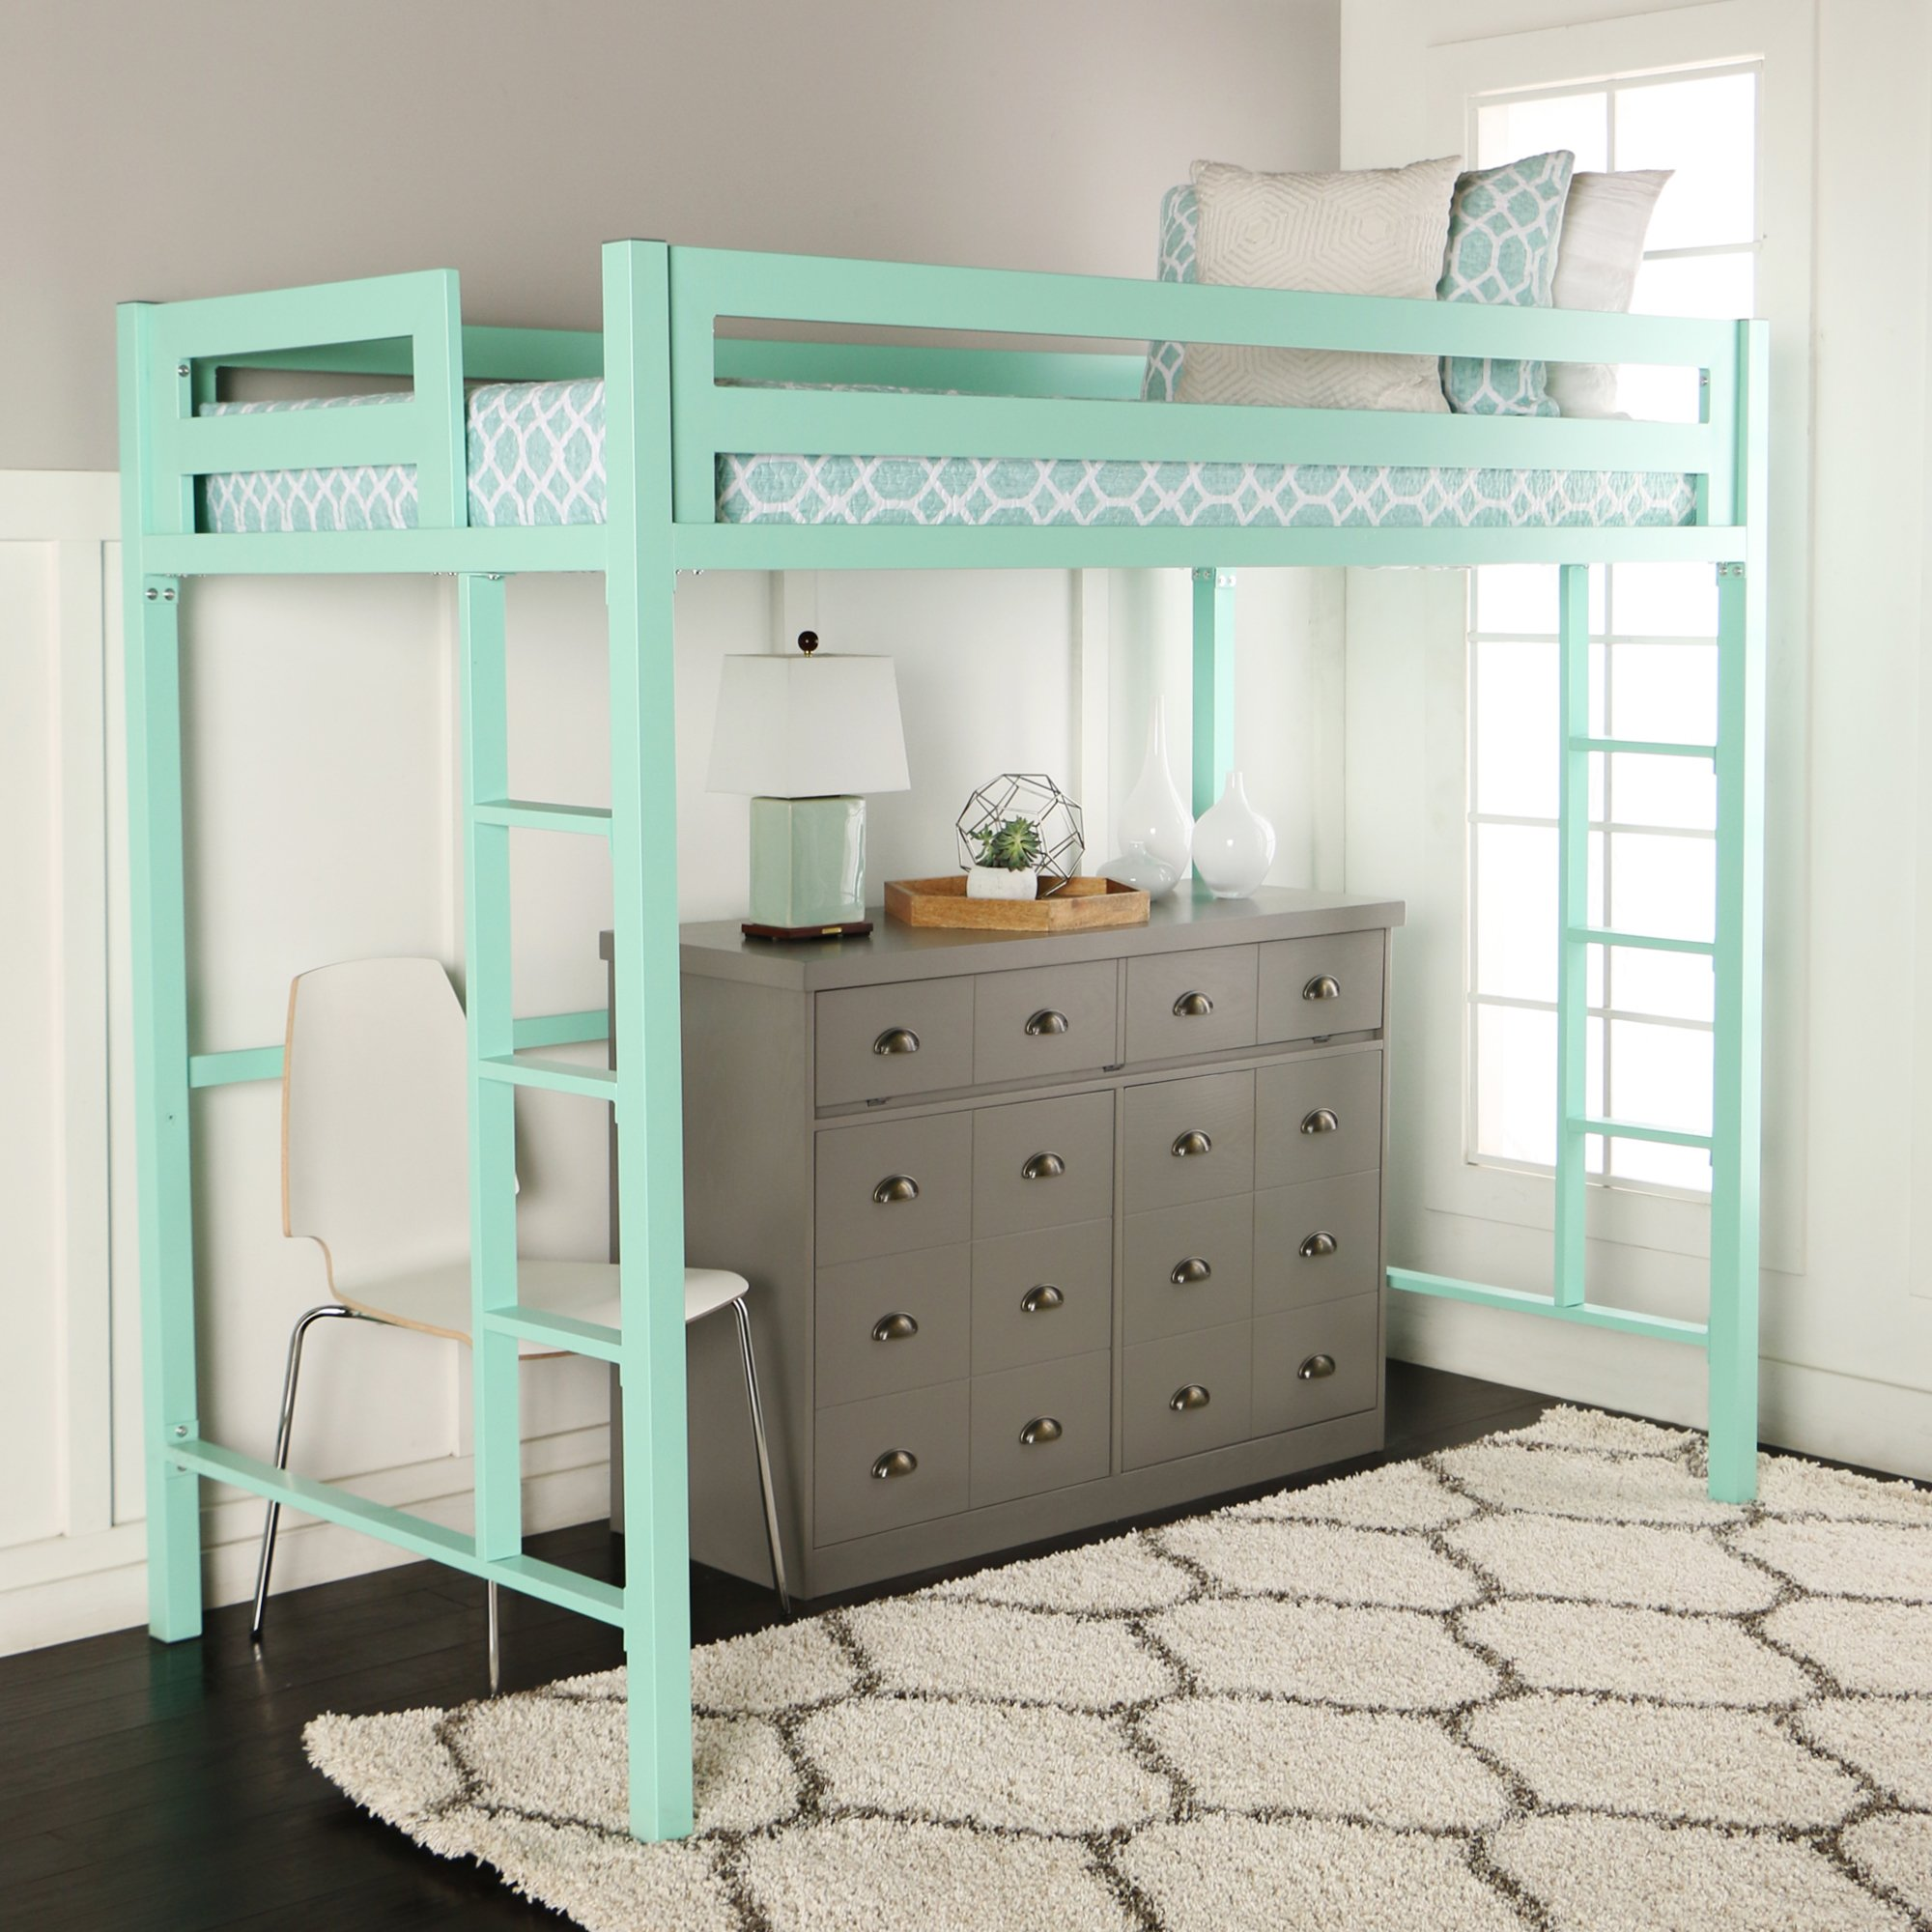 WE Furniture Premium Twin Metal Loft Bed, Mint by WE Furniture